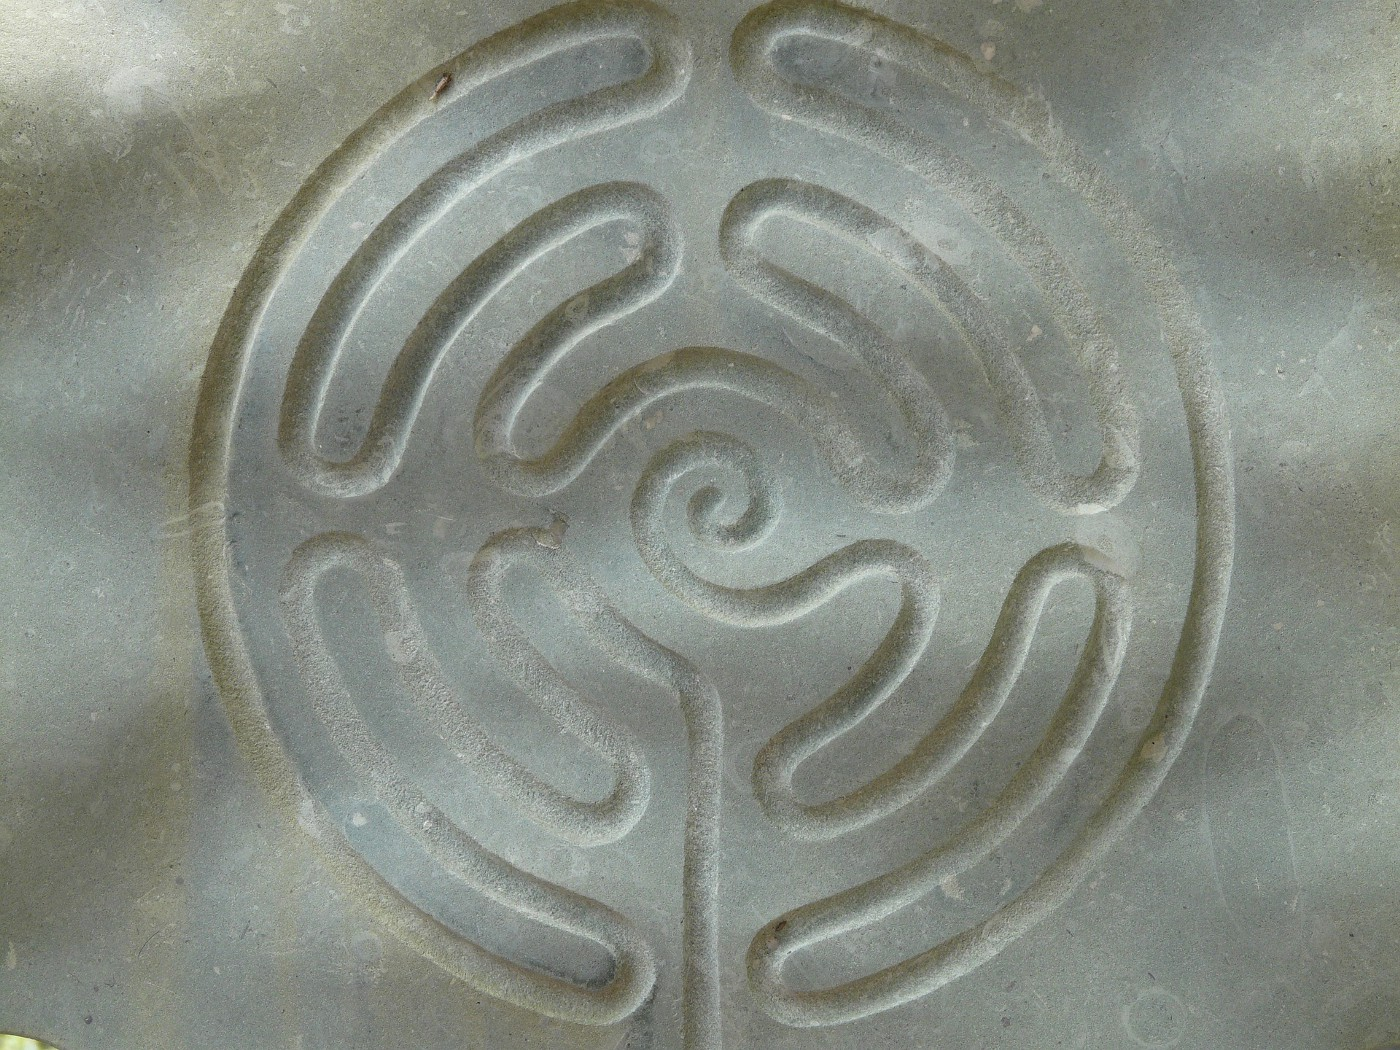 A labyrinth carved into stone